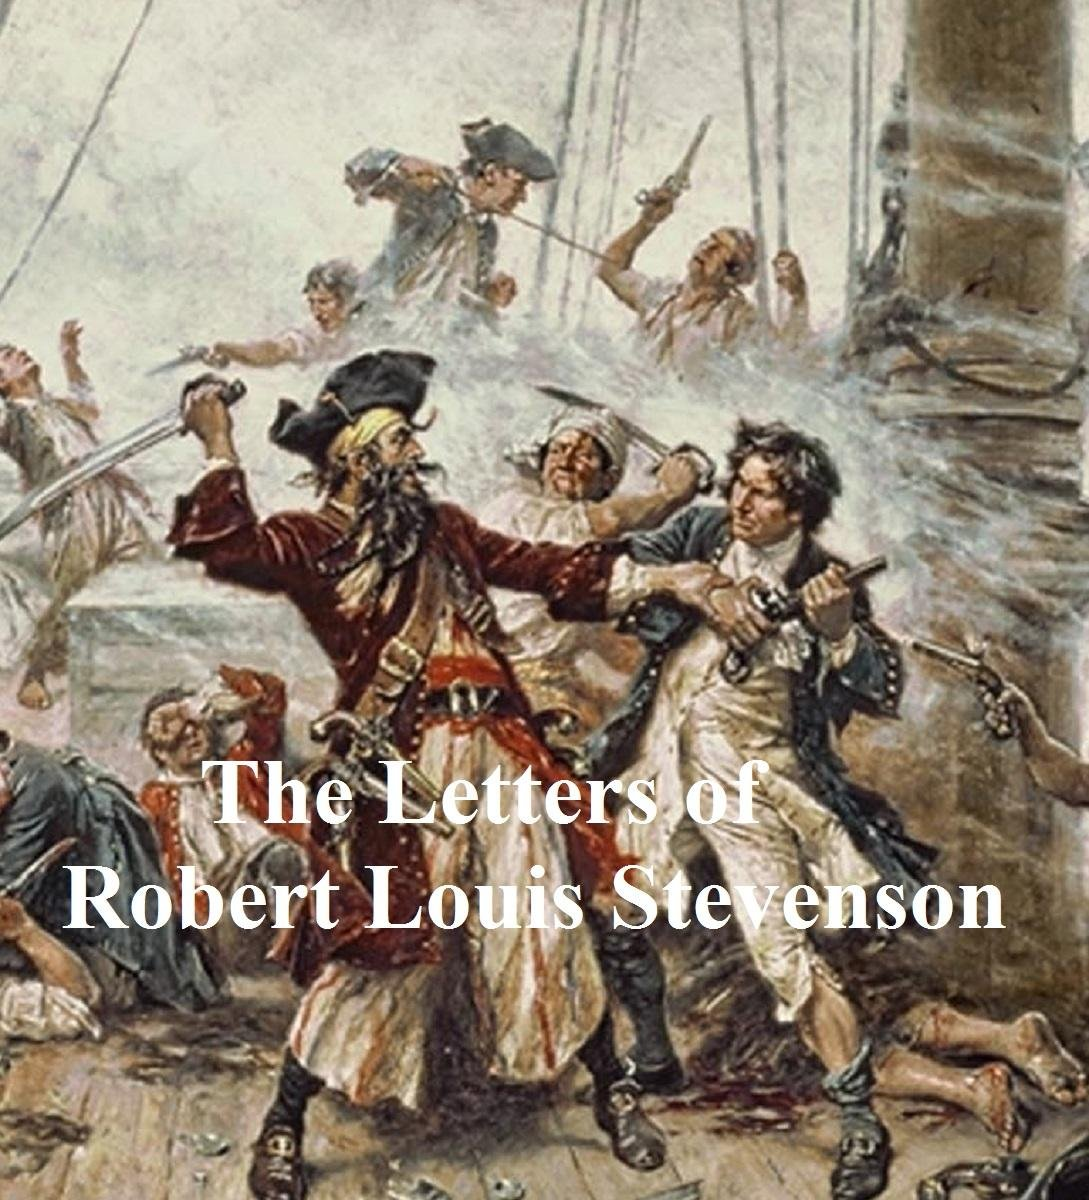 The Letters of Robert Louis Stevenson, both volumes in a single file